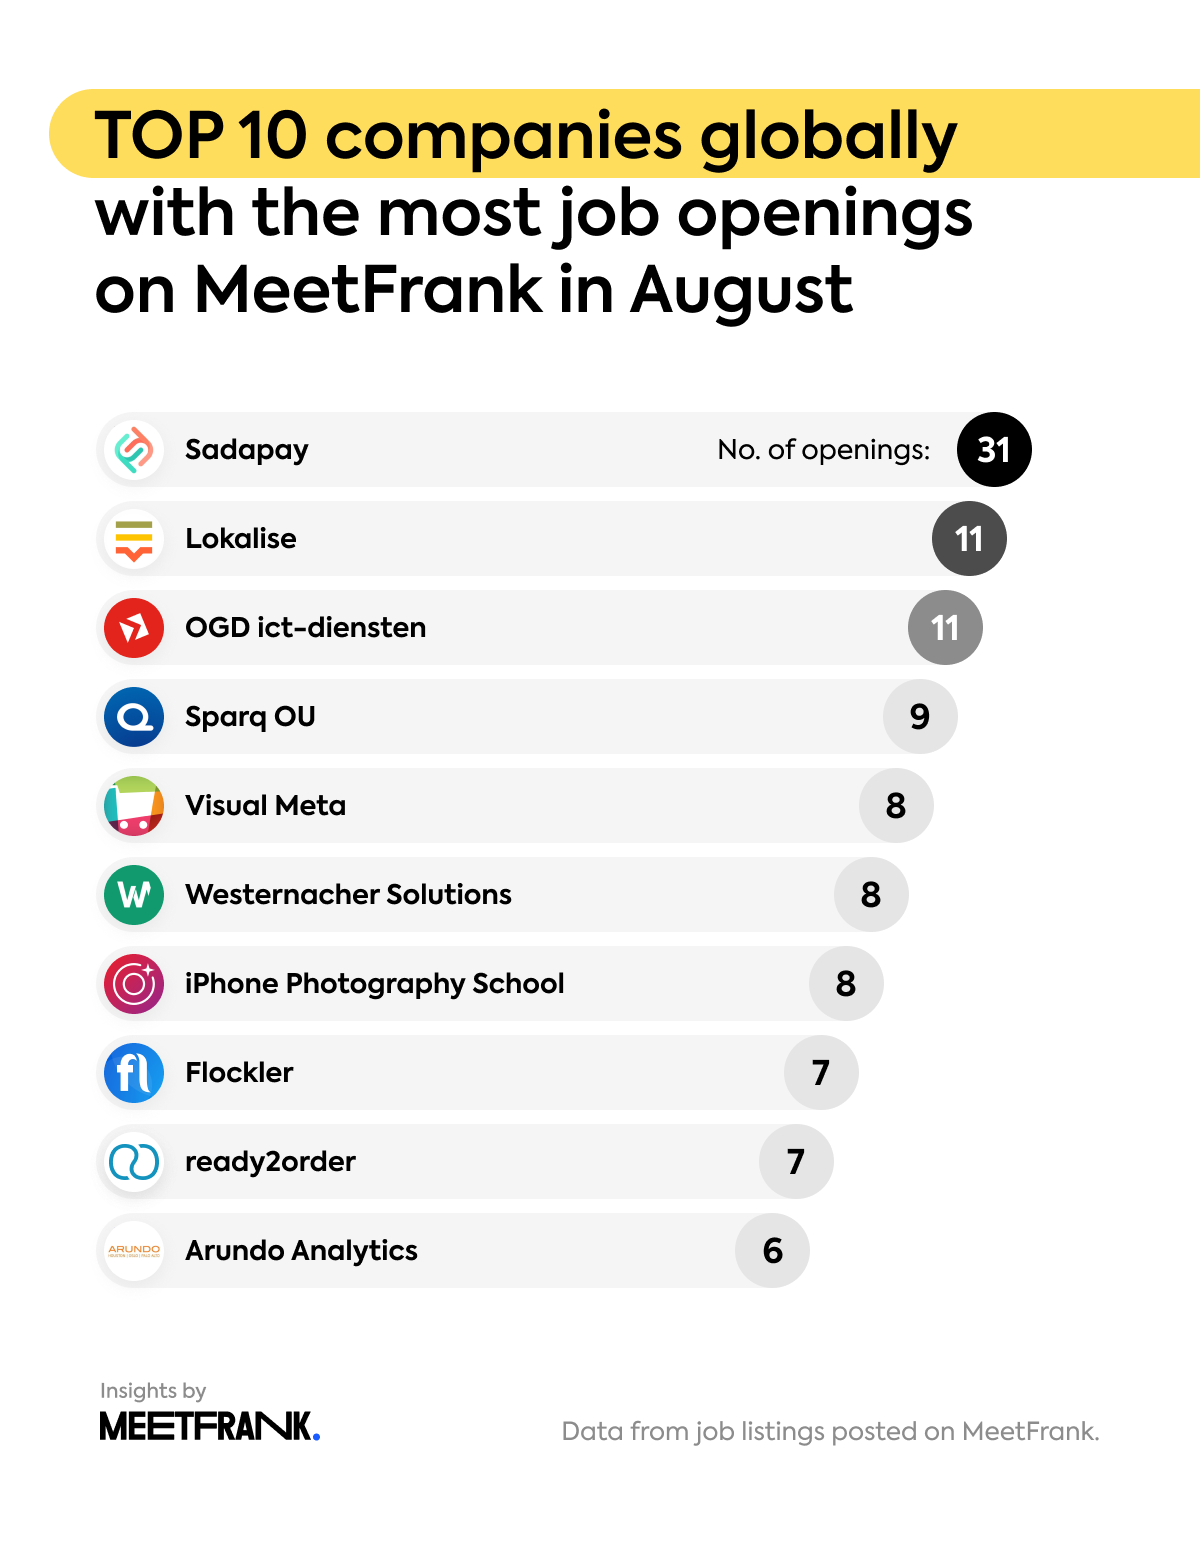 companies with the most openings globally